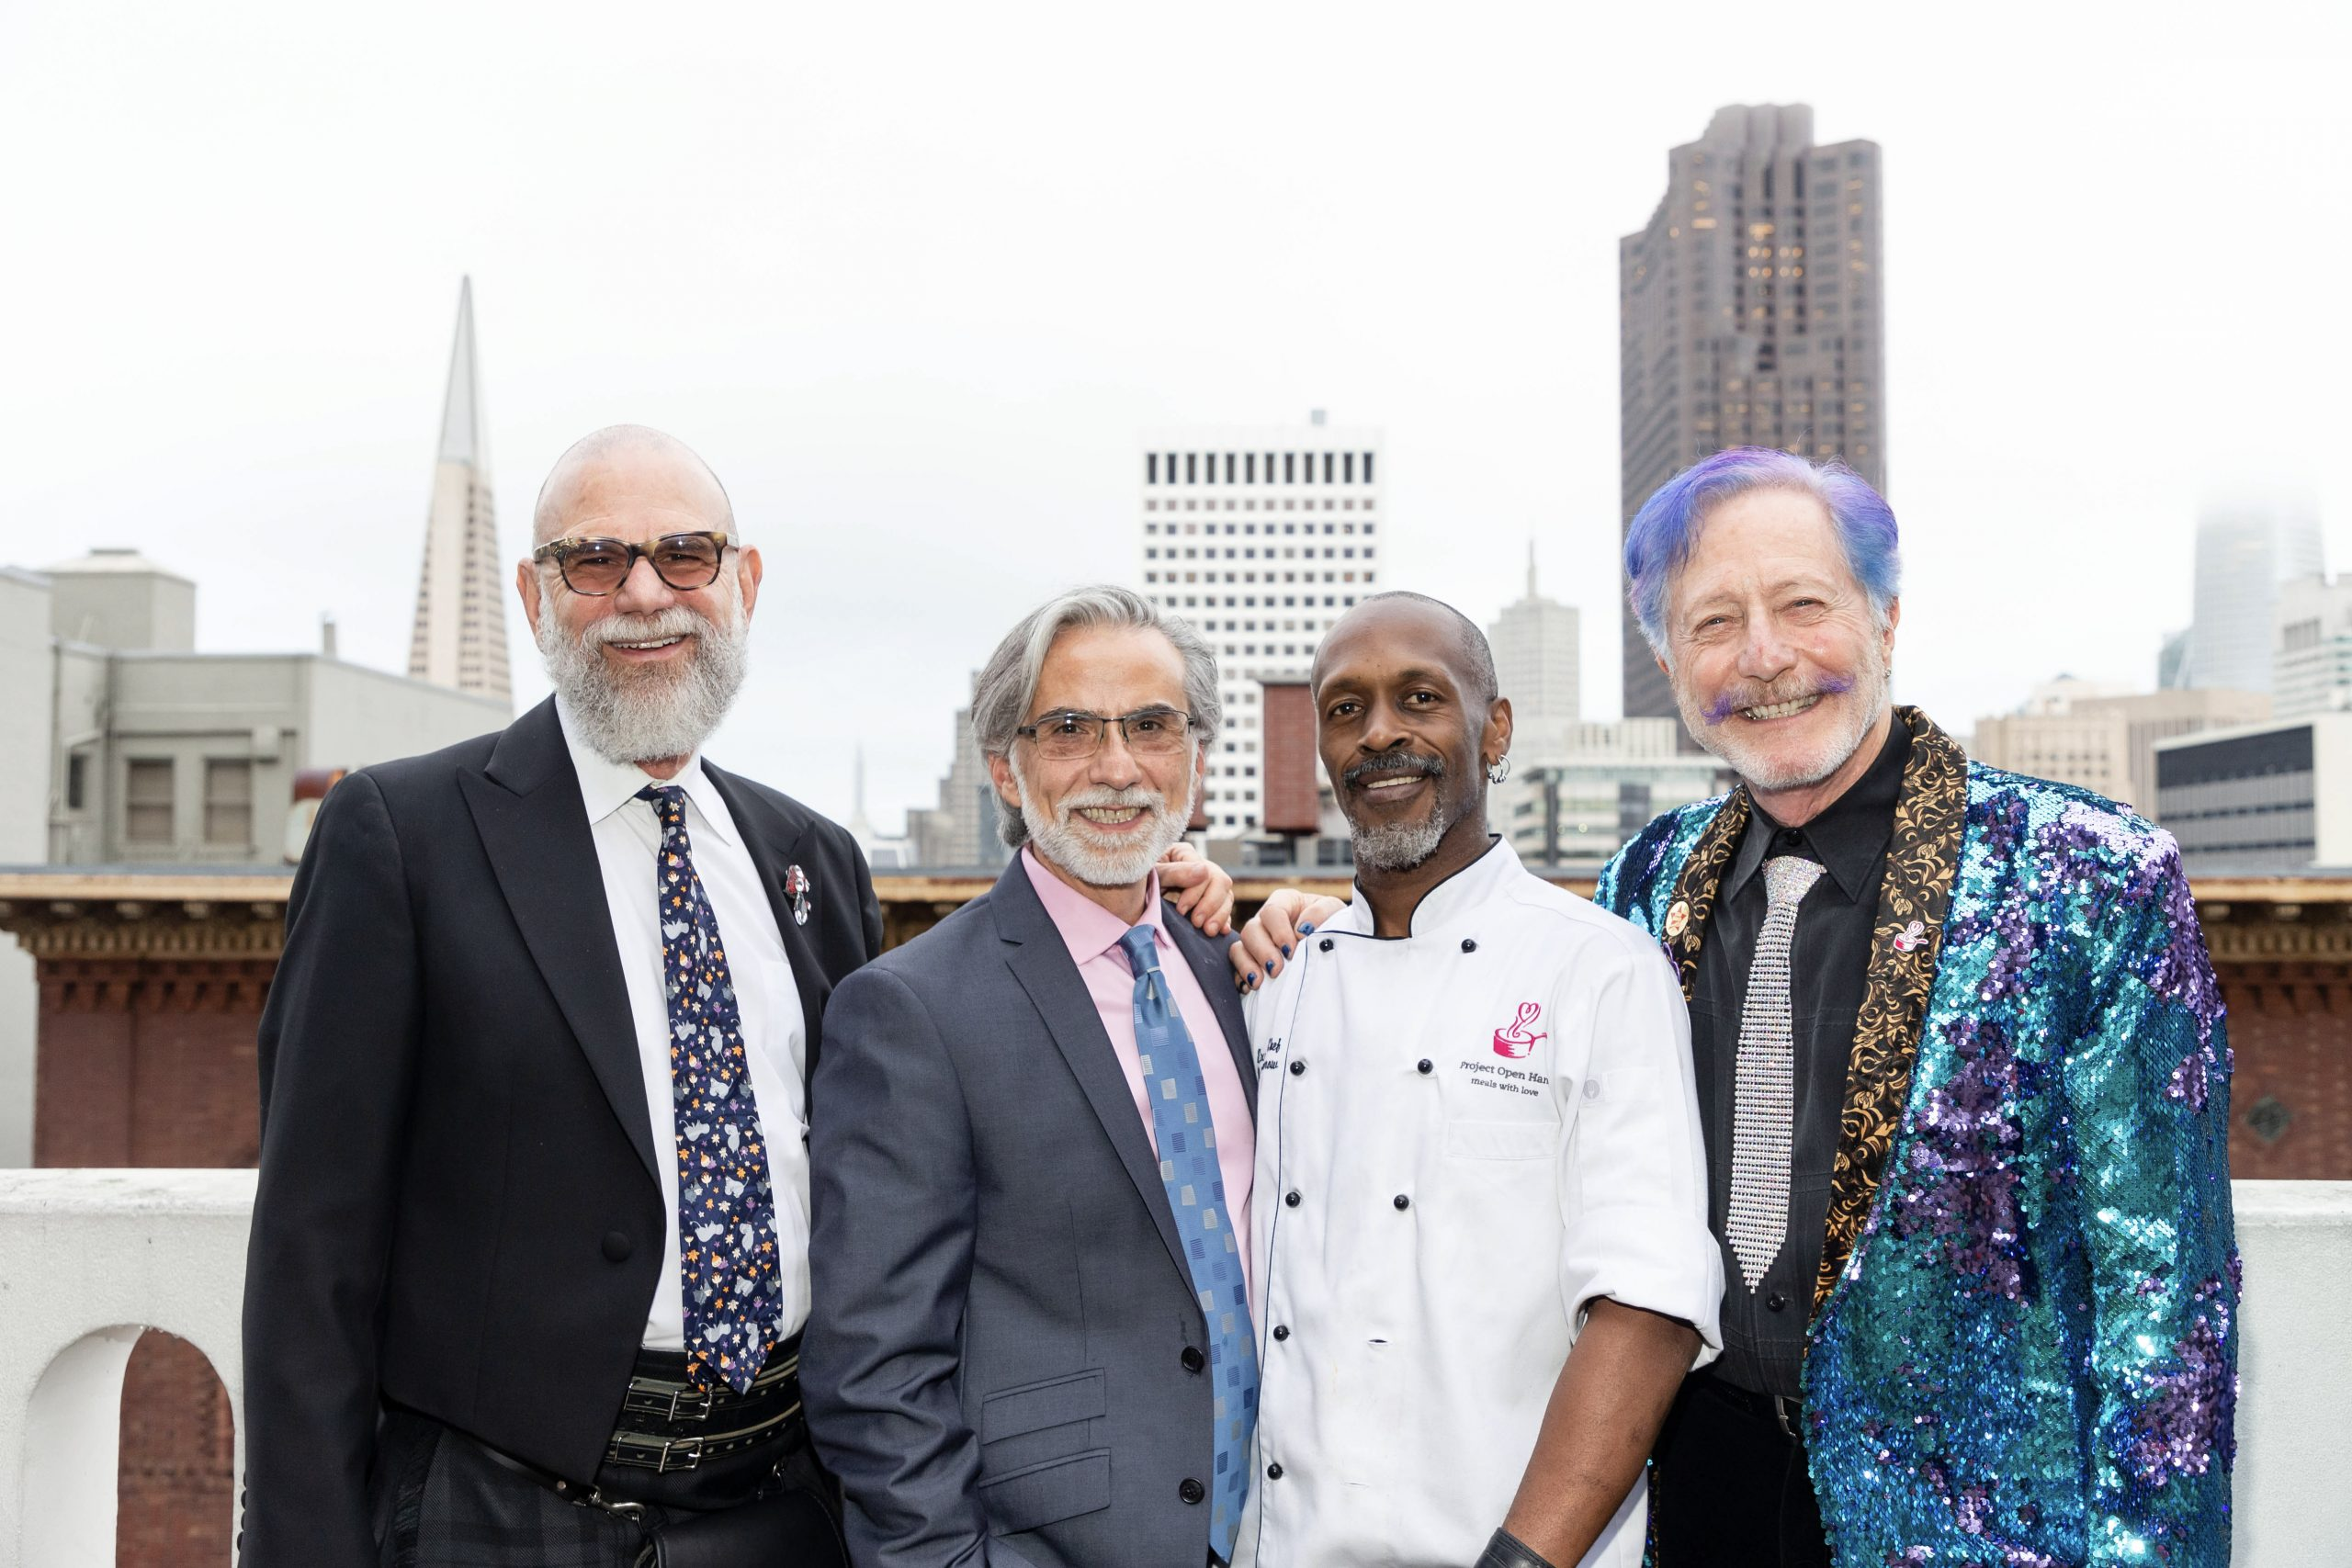 Four guests pose, with three wearing suits & ties and one wearing a chef outfit.